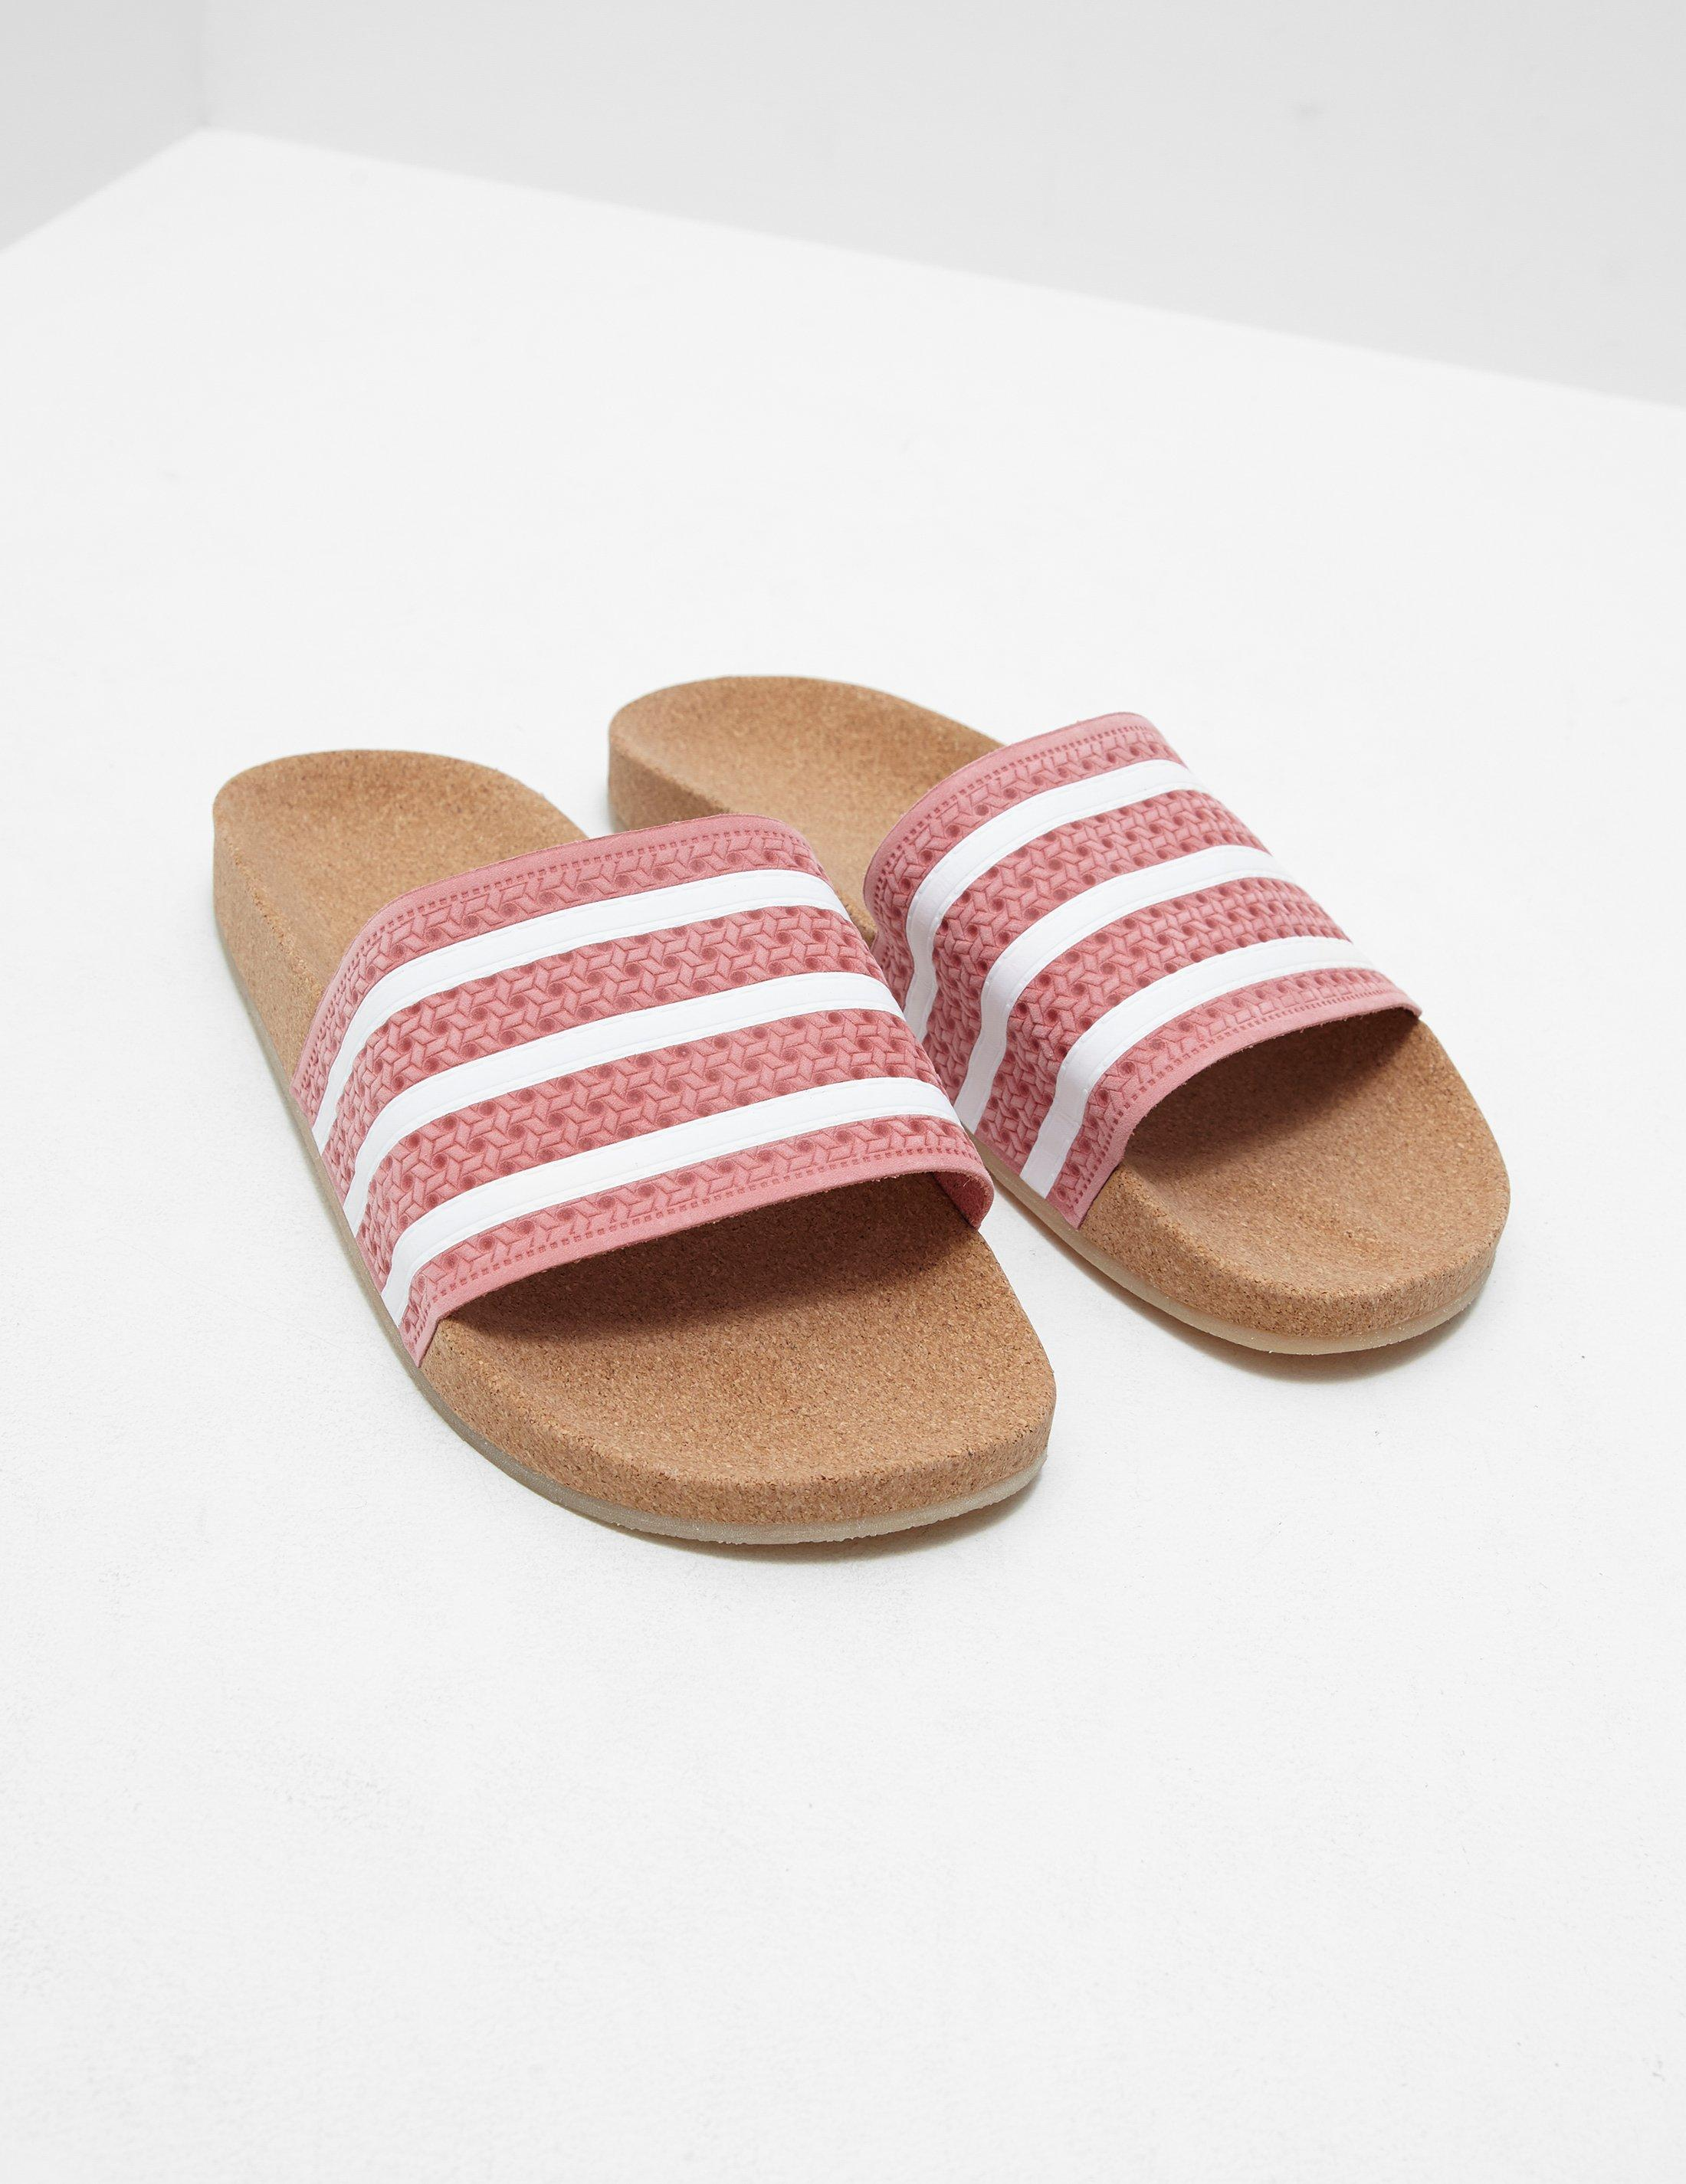 1912495c4e9e6 adidas Originals Womens Adilette Cork Slides Pink in Pink - Lyst